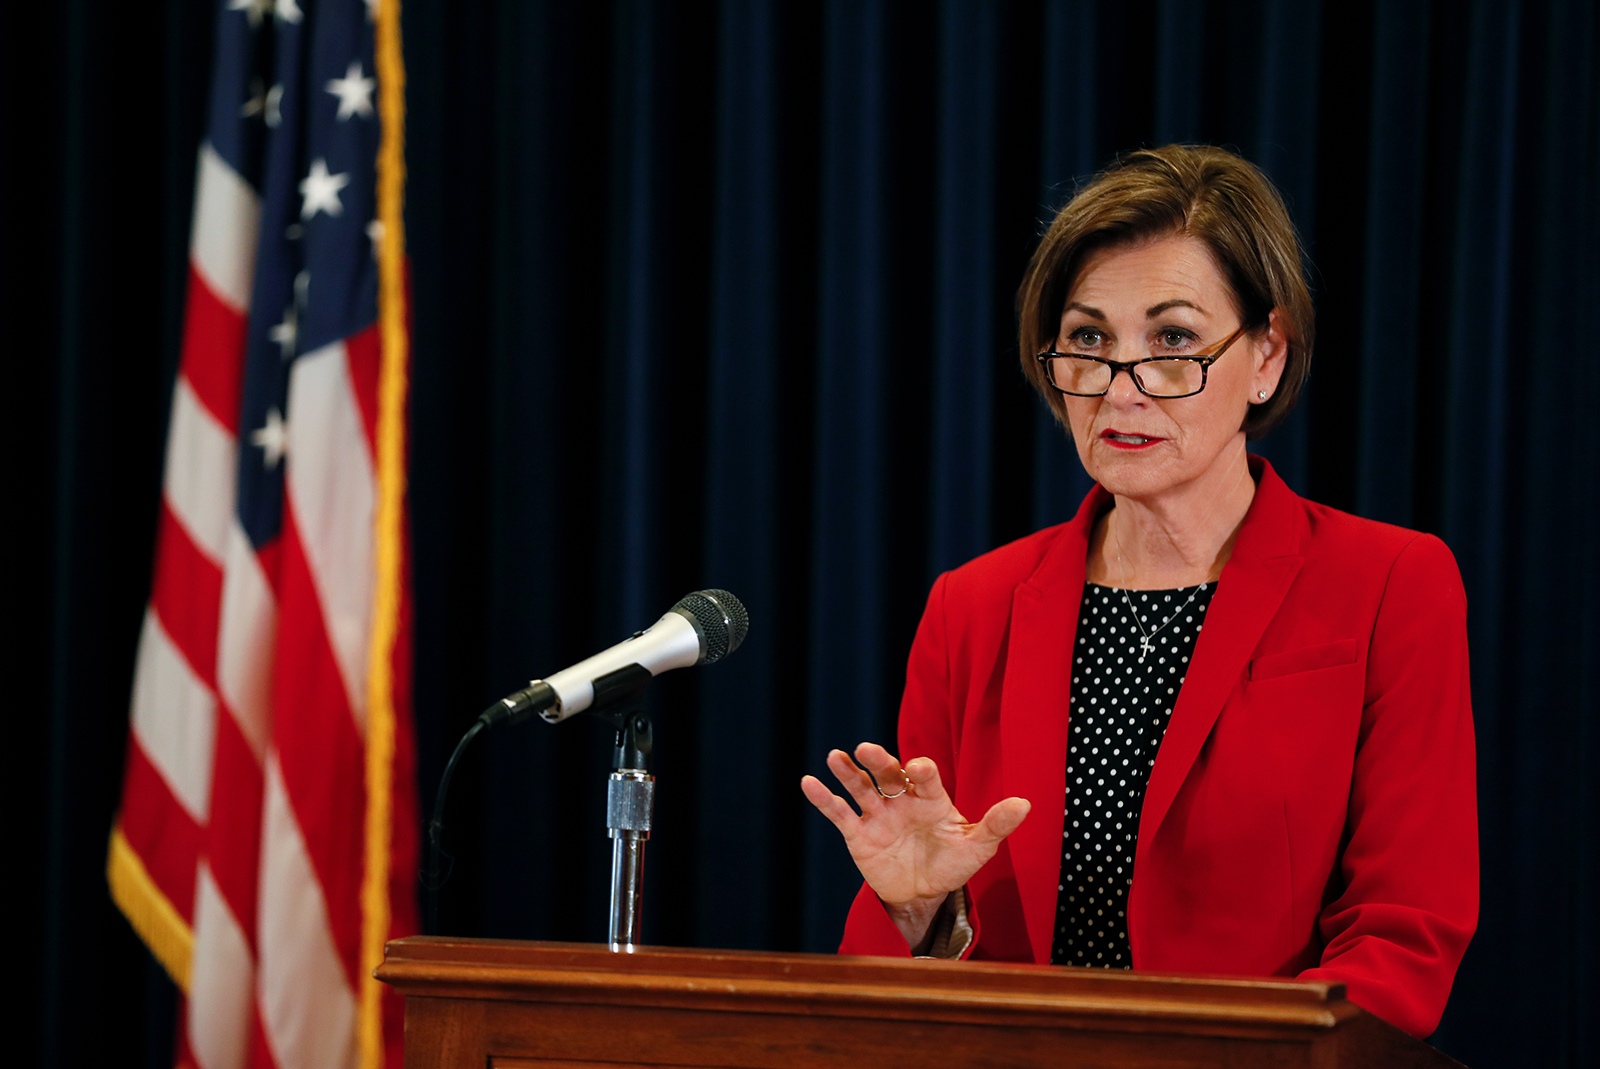 Iowa Gov. Kim Reynolds speaks during a news conference in Des Moines, Iowa, on June 2.